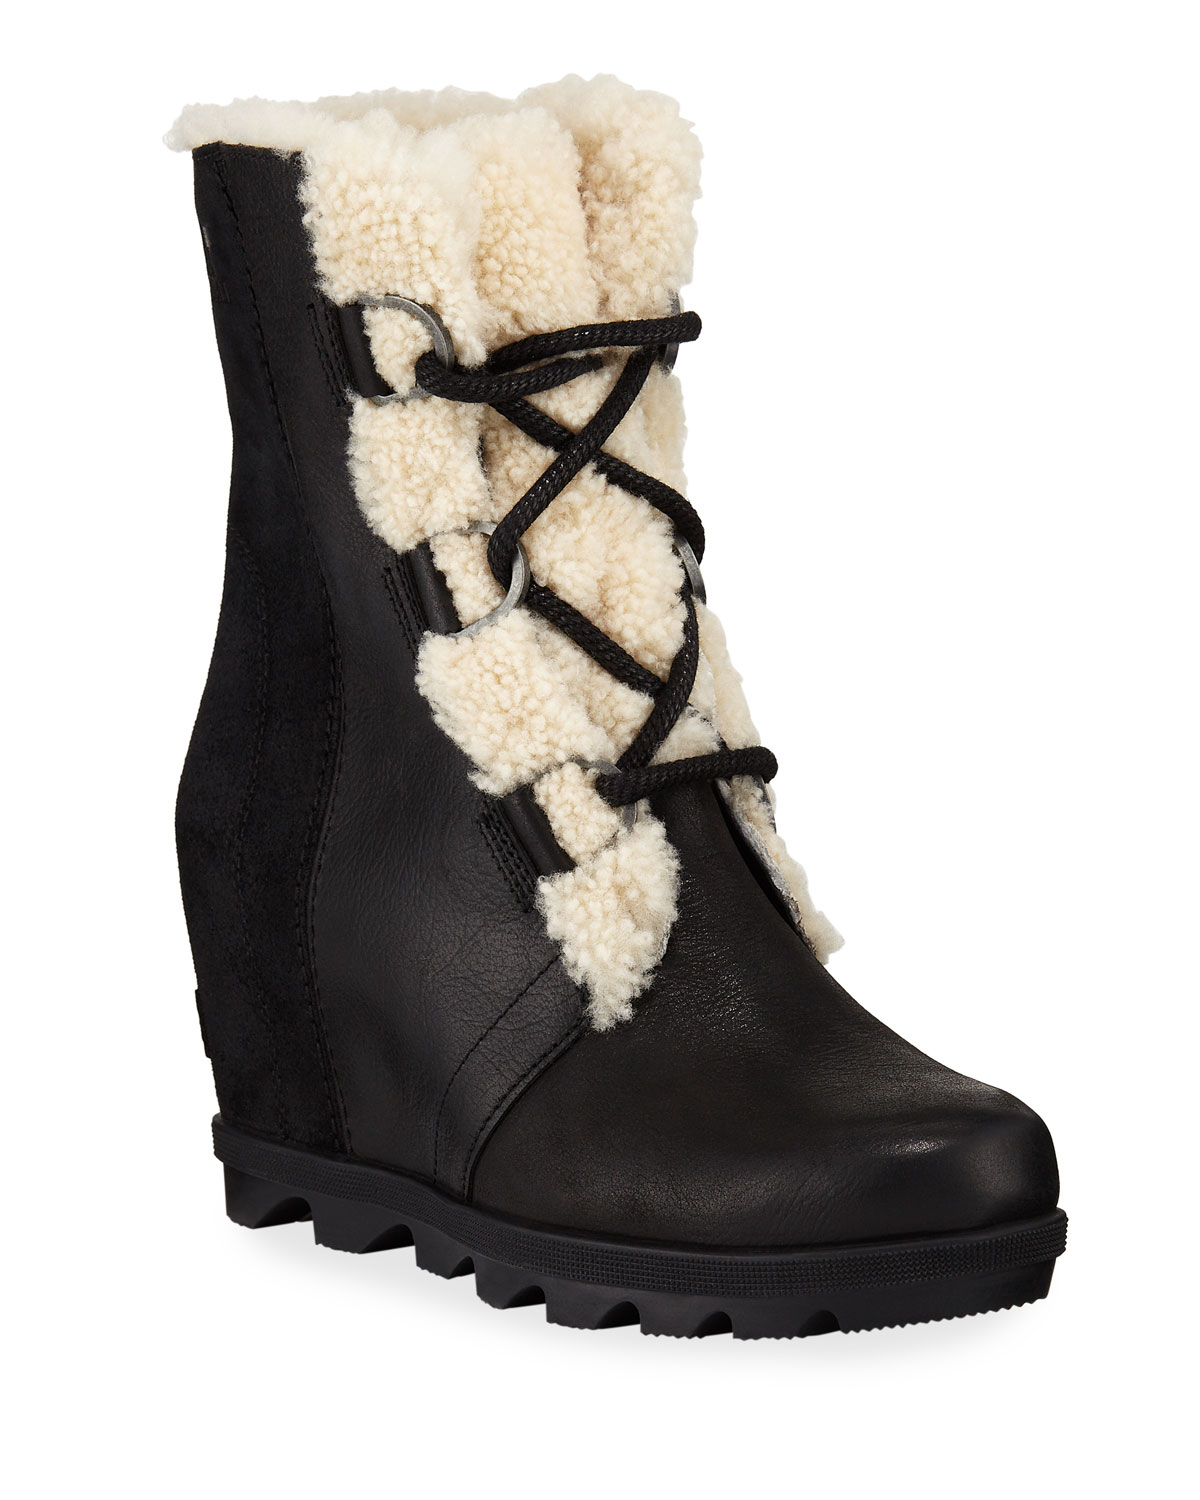 speical offer new design official store Sorel Joan of Arctic Wedge II Waterproof Boots with Shearling Fur ...